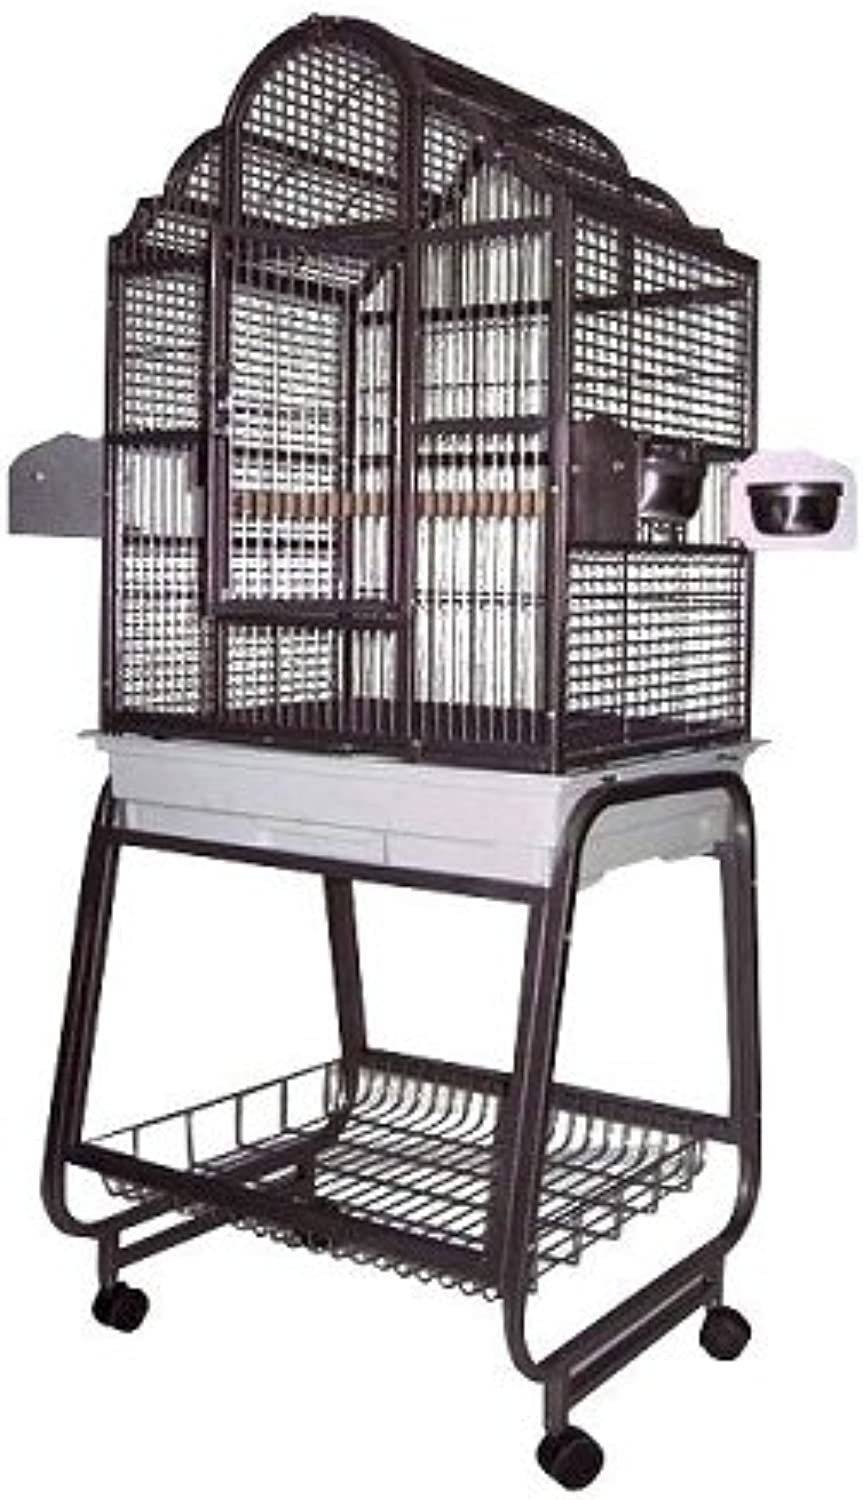 A&E Cage 703 Black Victorian Top Bird Cage with Removable Stand, 22  x 18